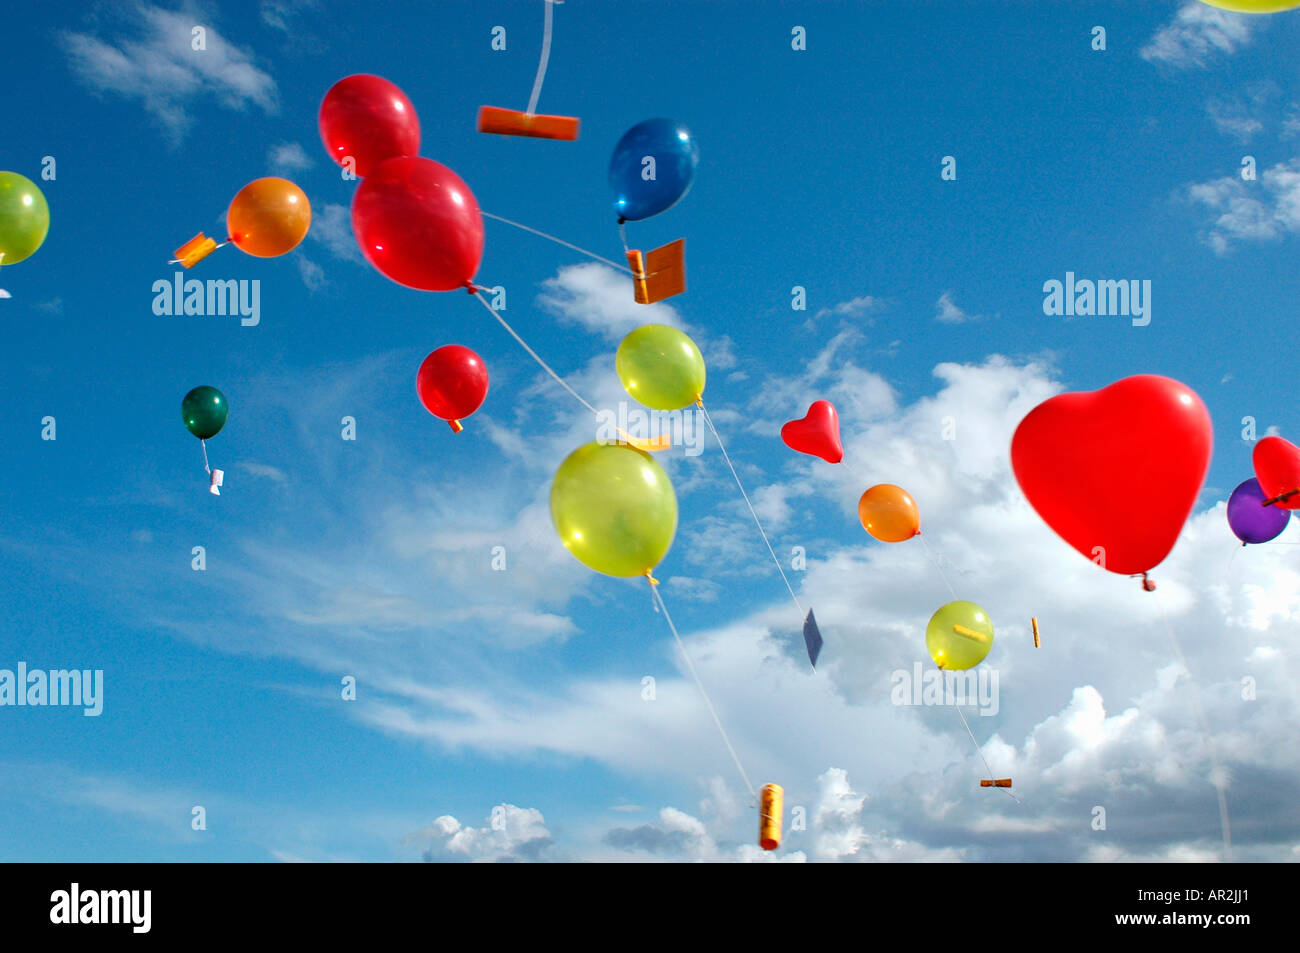 Colored helium balloons with messages floating in the sky above Stock Photo